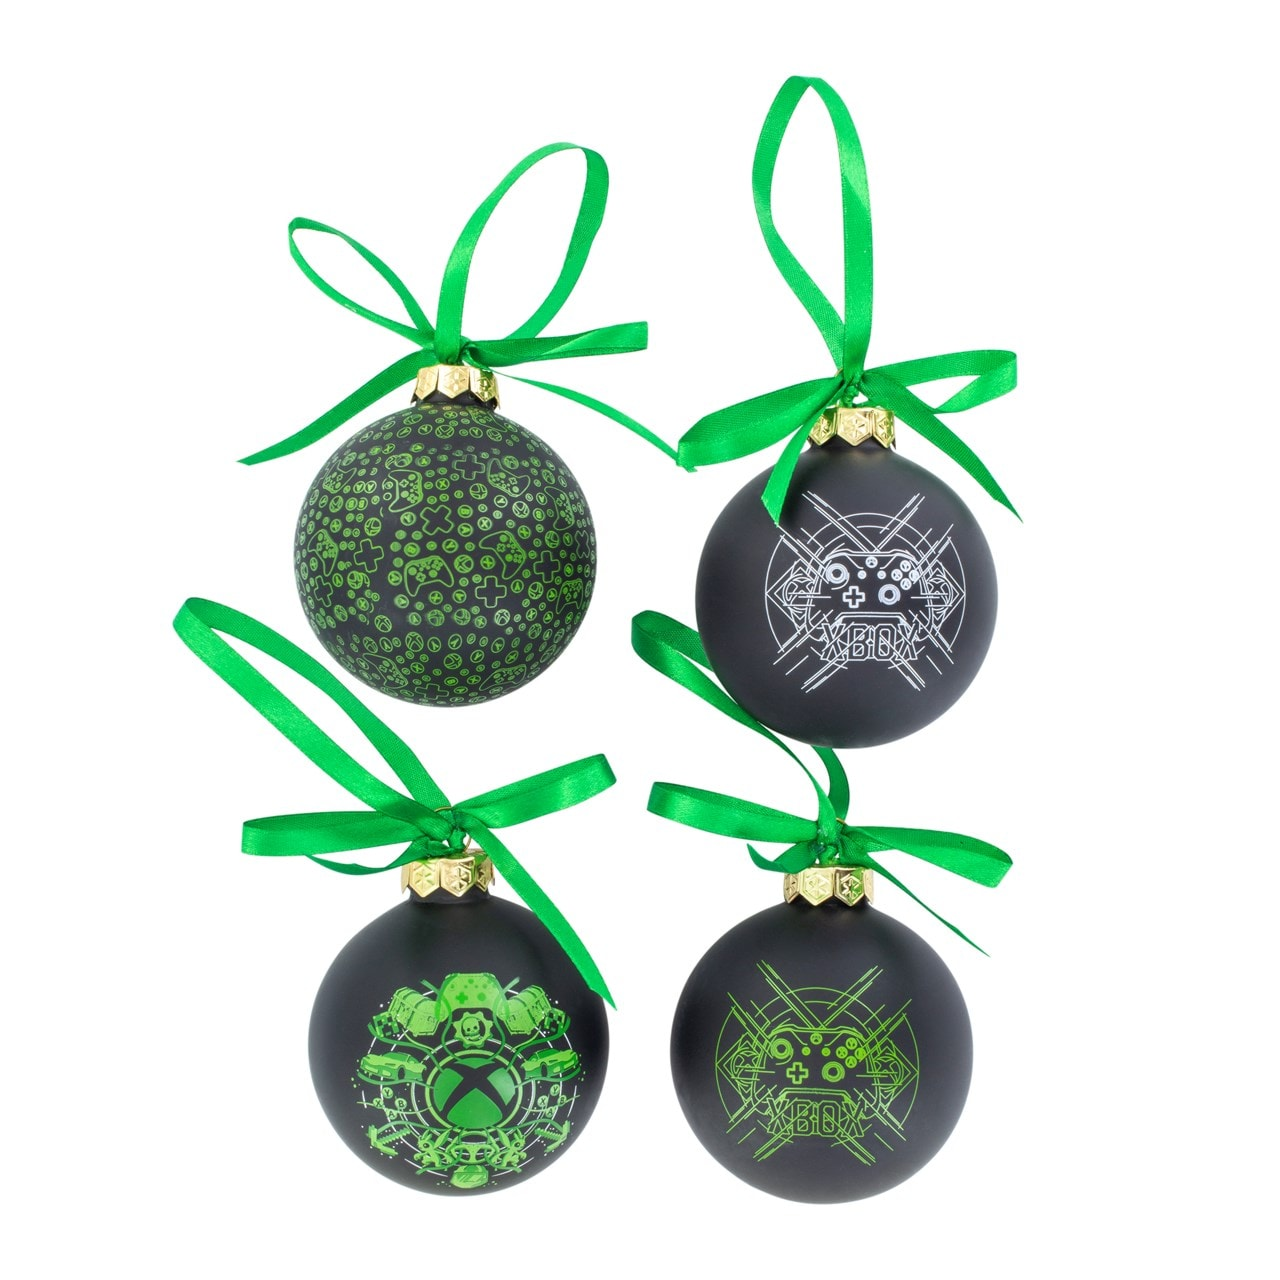 Xbox Glass Christmas Ornaments - 2